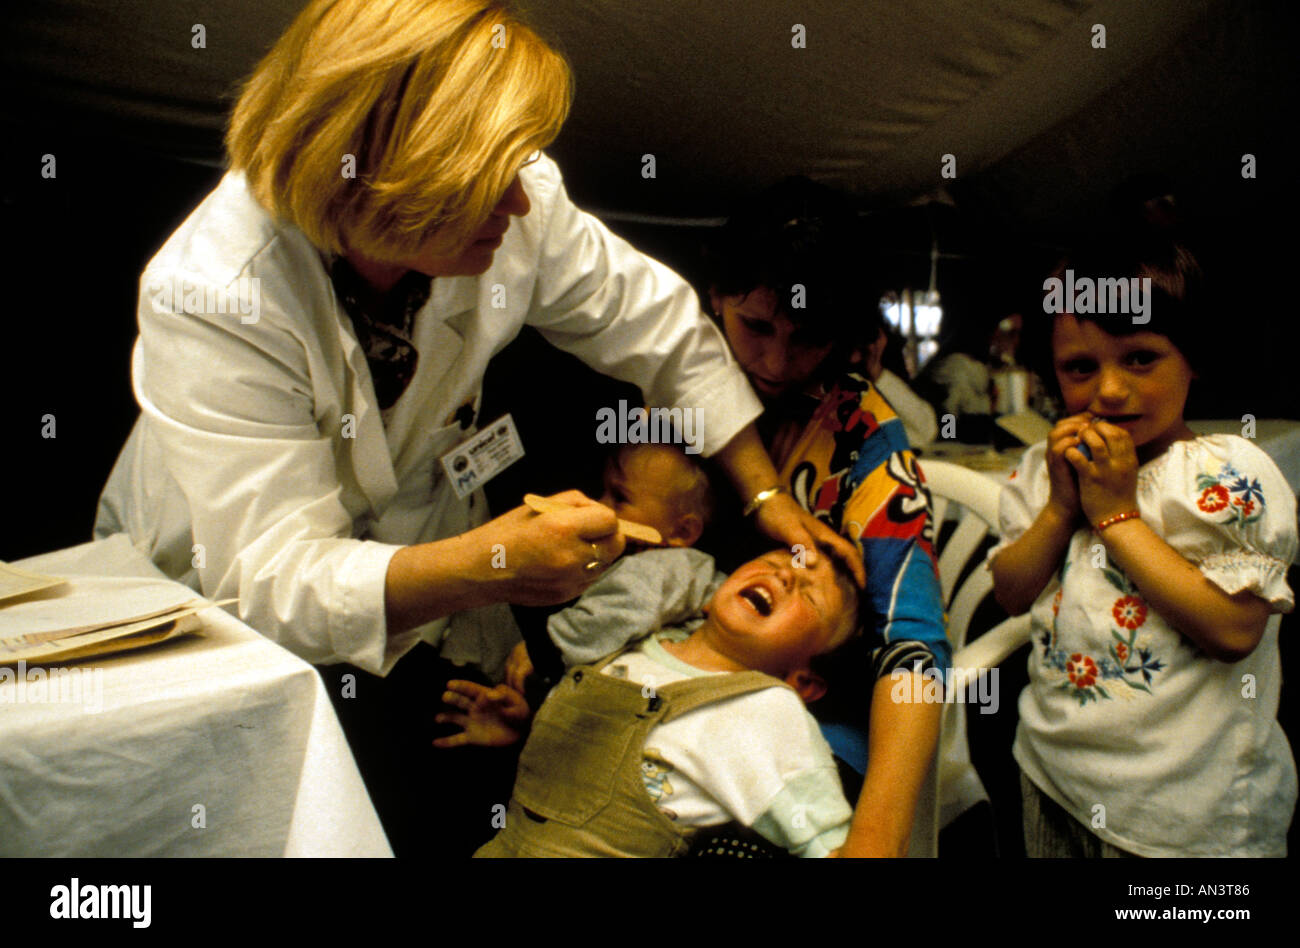 Kosovar children getting medical checkups at a refugee camp in Macedonia during the Kosovo Conflict 1999 - Stock Image